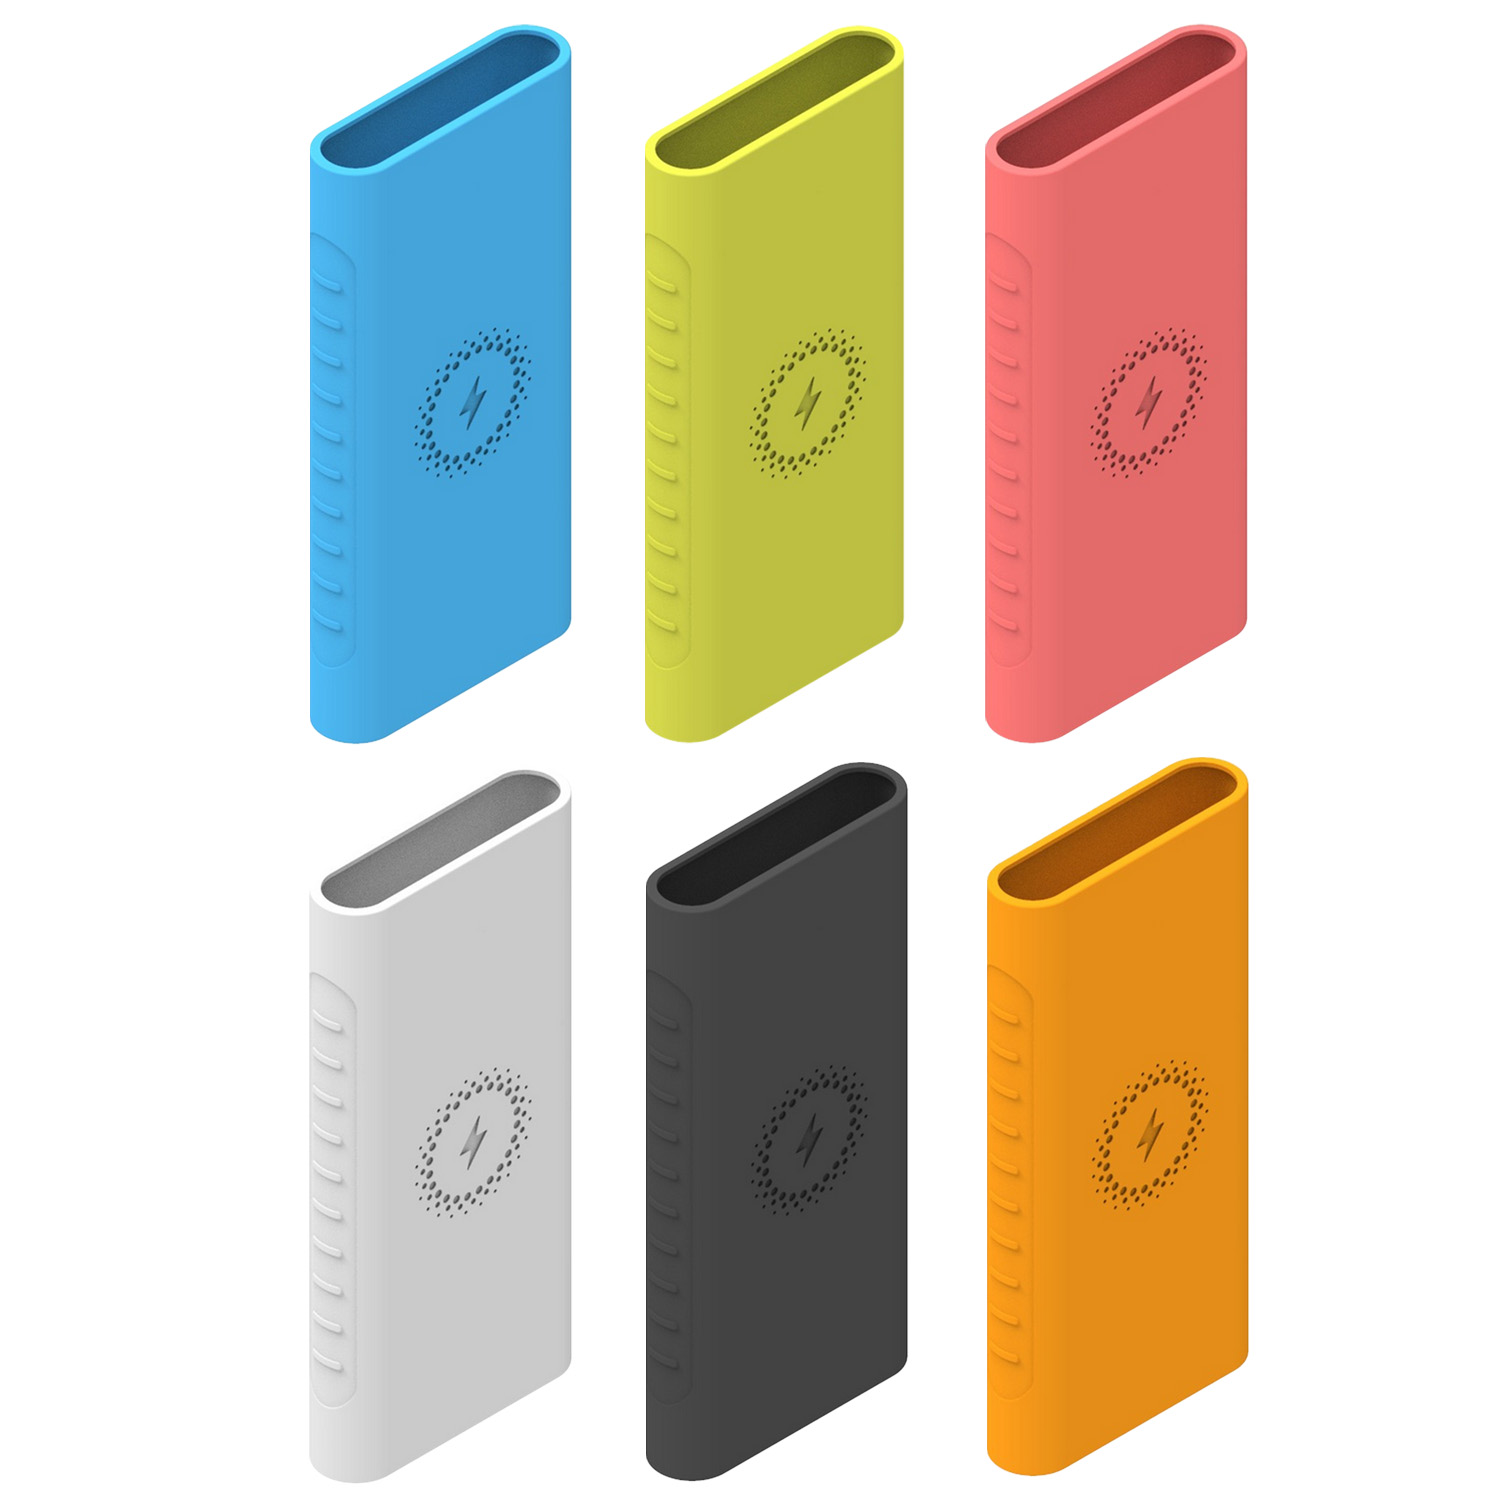 Fashion Non-slip Soft Silicone Protective Case Cover Shell for <font><b>Xiaomi</b></font> <font><b>Mi</b></font> PLM11ZM <font><b>Wireless</b></font> <font><b>Power</b></font> <font><b>Bank</b></font> <font><b>10000mAh</b></font> image